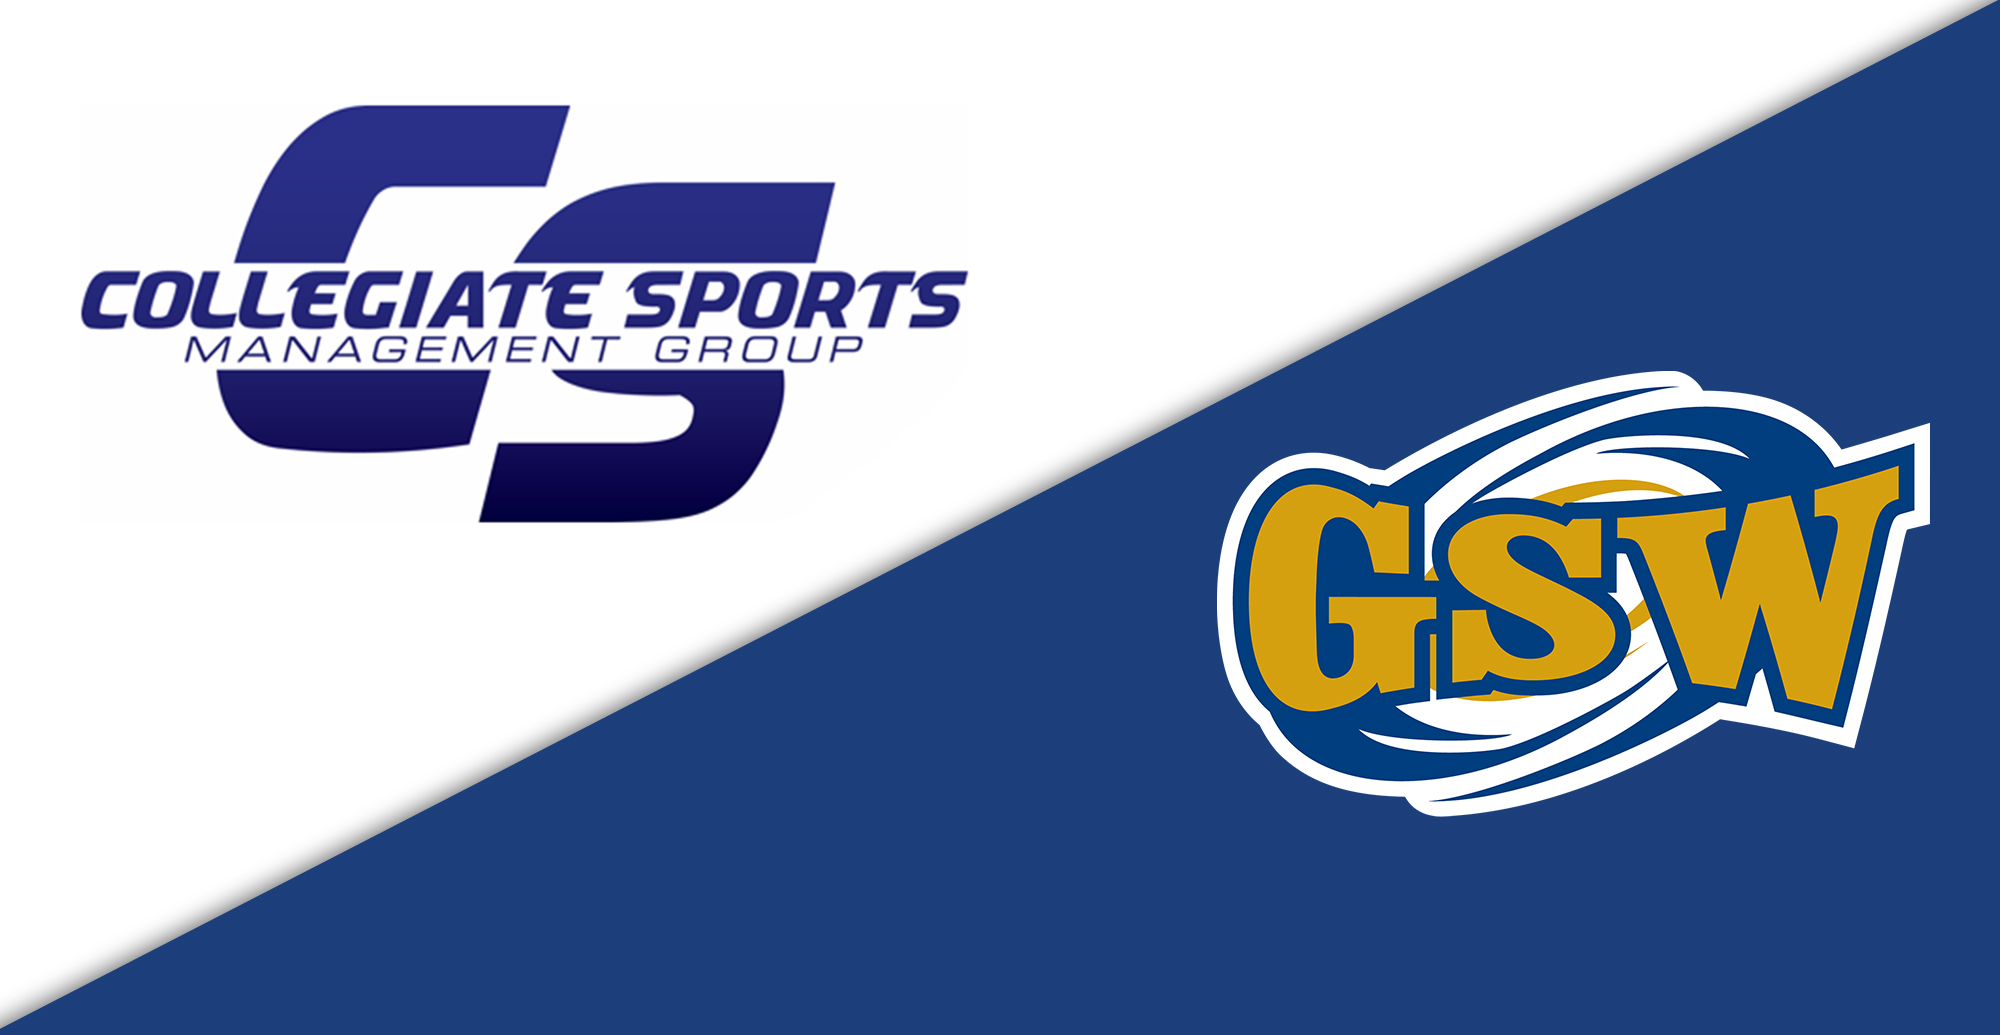 GSW Partners With Collegiate Sports Management Group